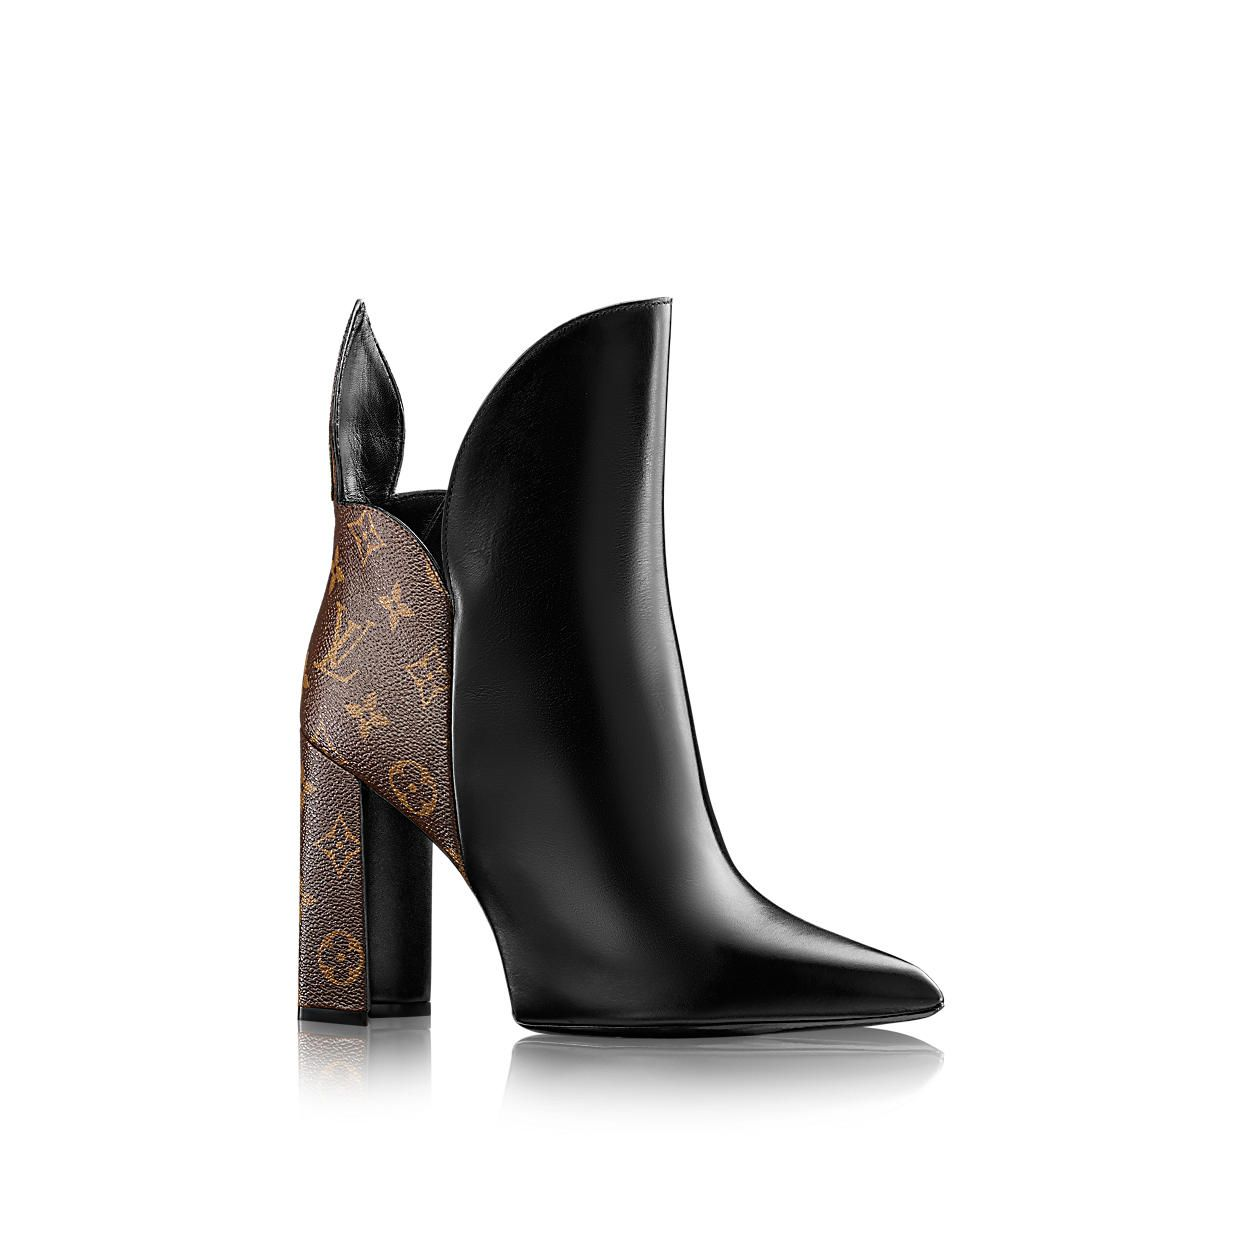 57952a7ab3 Rodeo Queen Ankle Boot in WOMEN's SHOES collections by Louis Vuitton ...